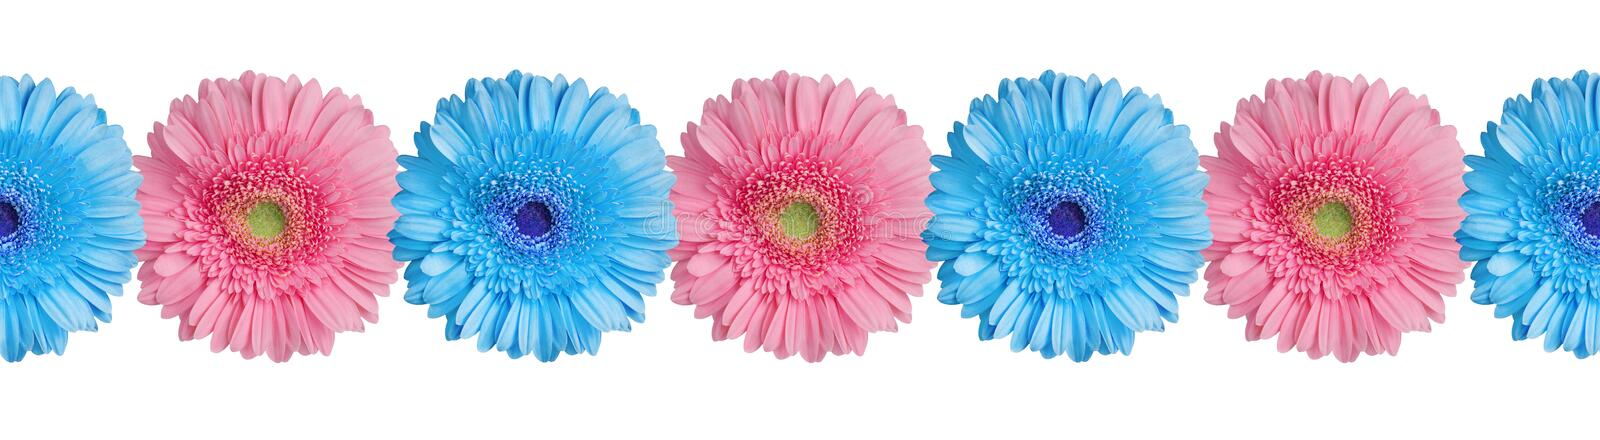 Blue and pink gerbera flowers border on white background isolated close up, gerber flower seamless pattern, decorative frame line royalty free stock images